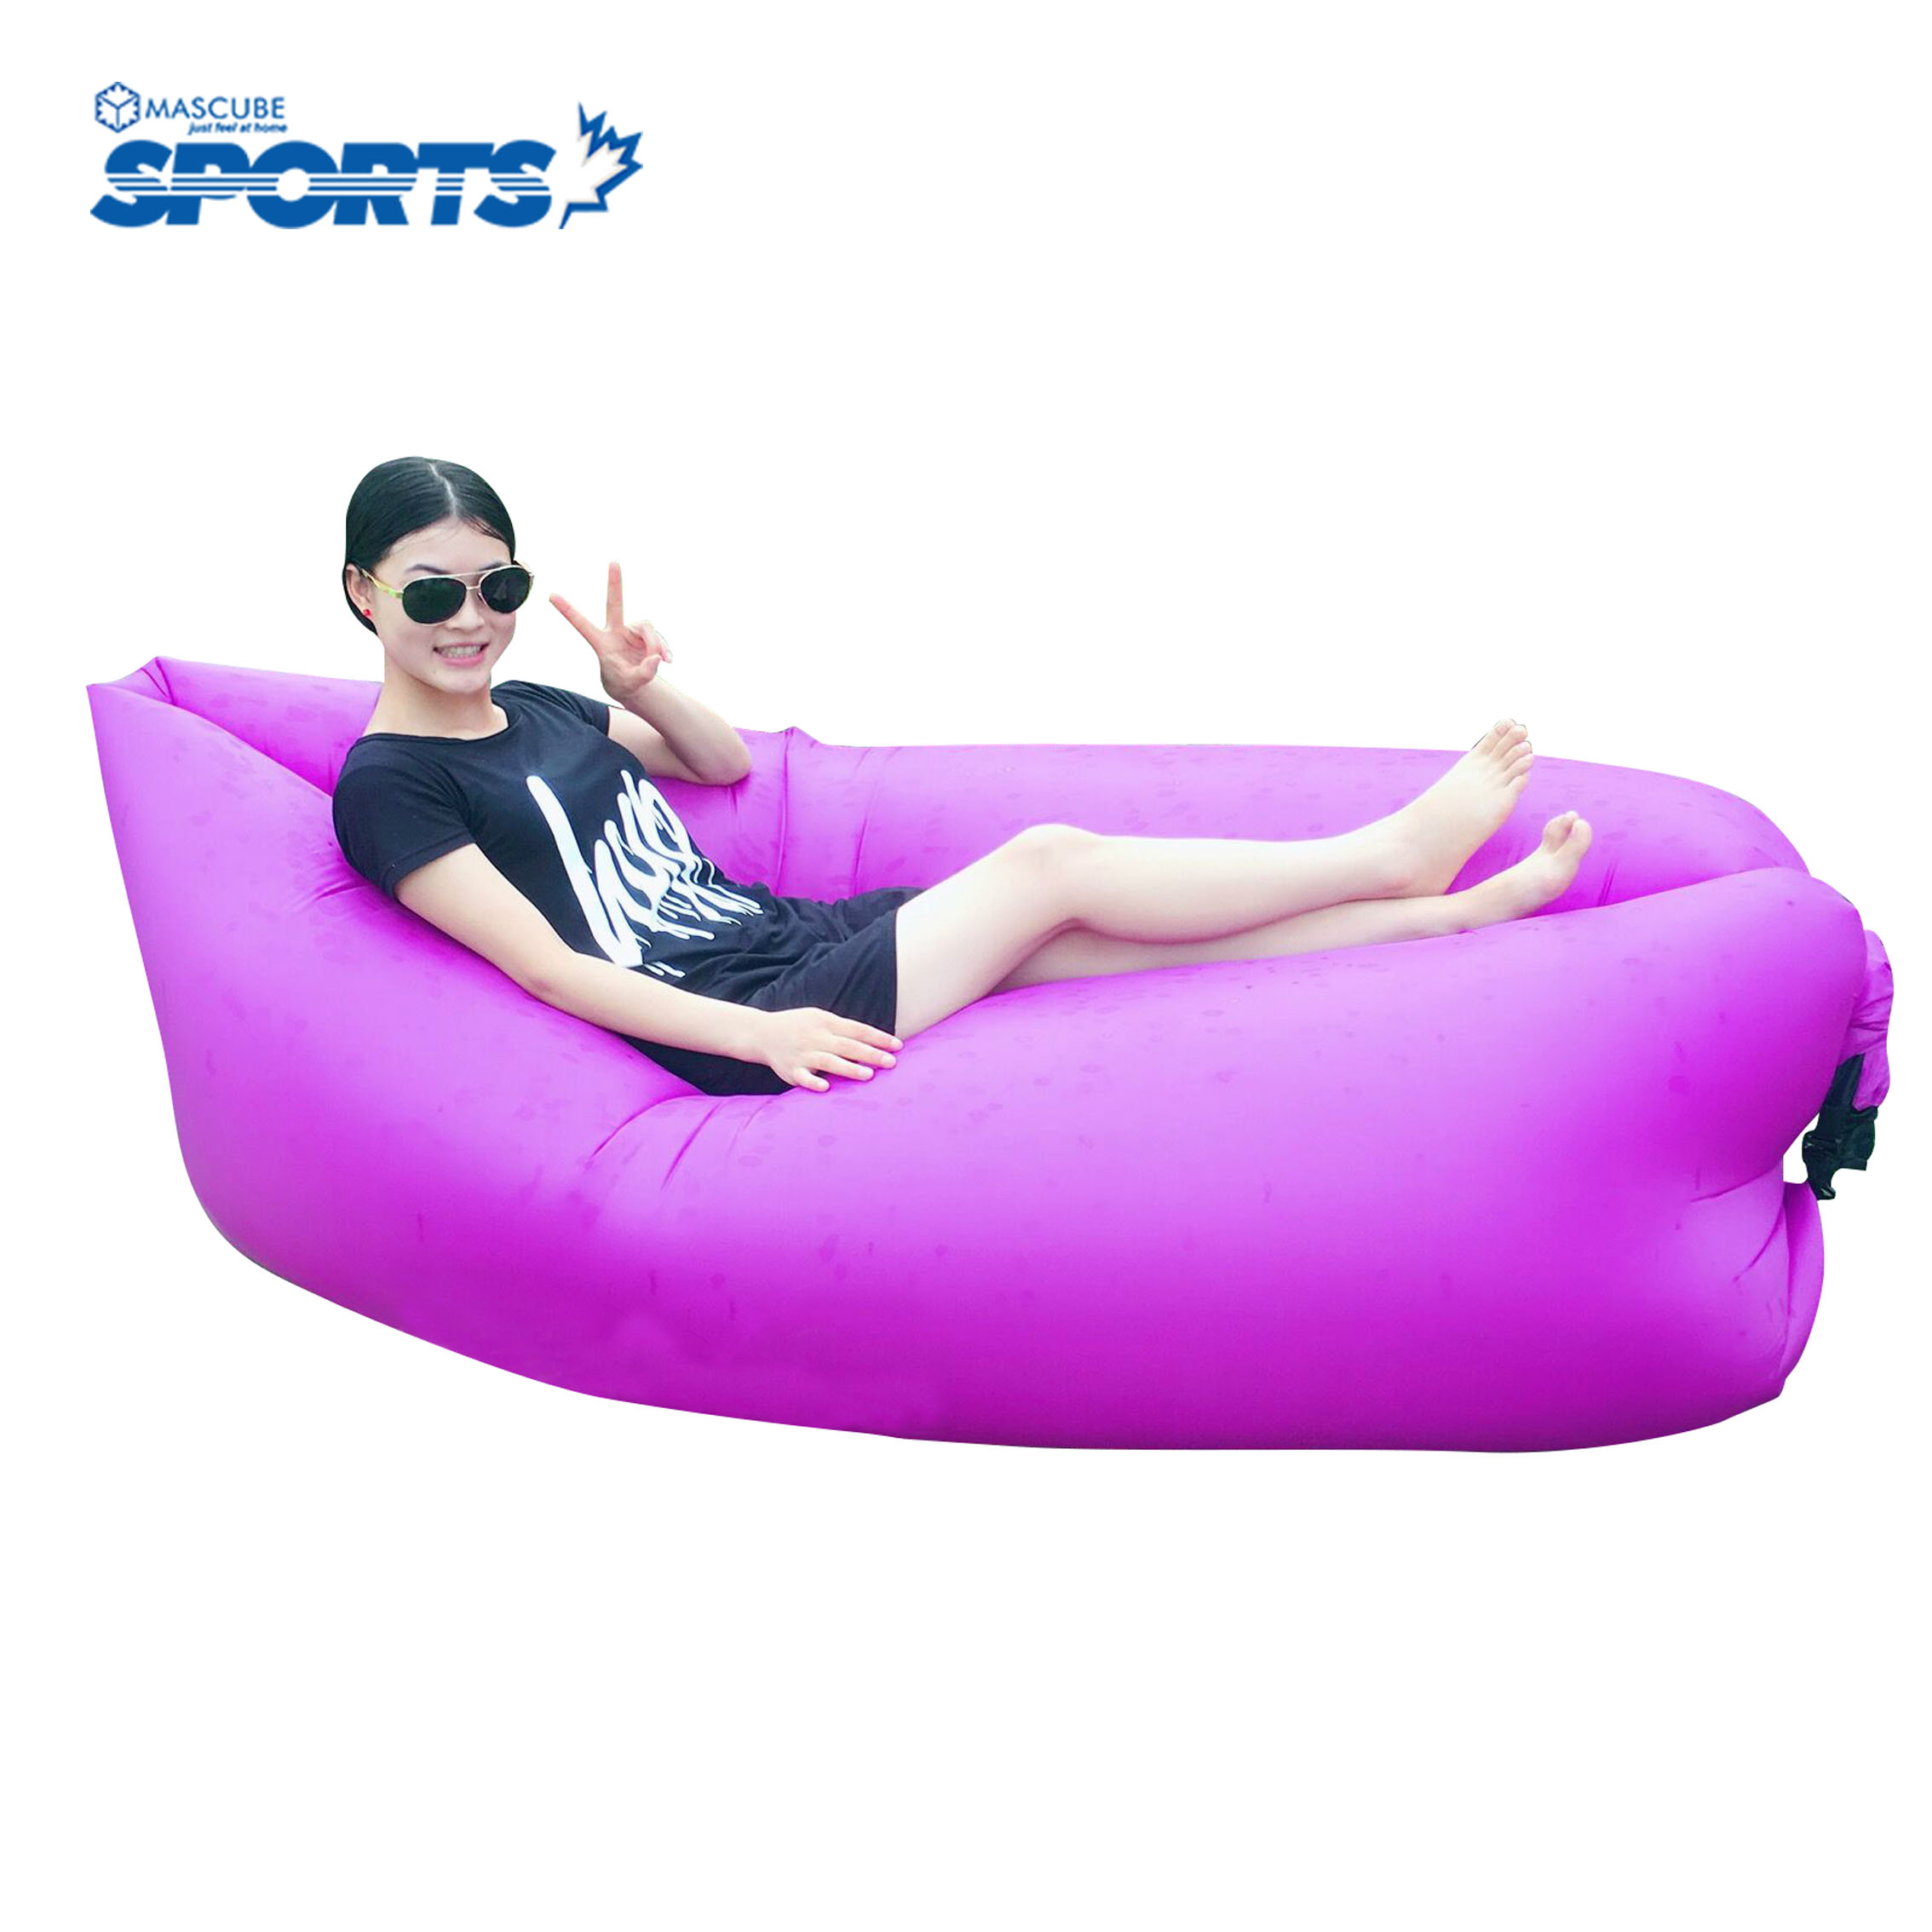 Sofa Bed Inflatable Inflatable Sofa Bed Ebay Thesofa